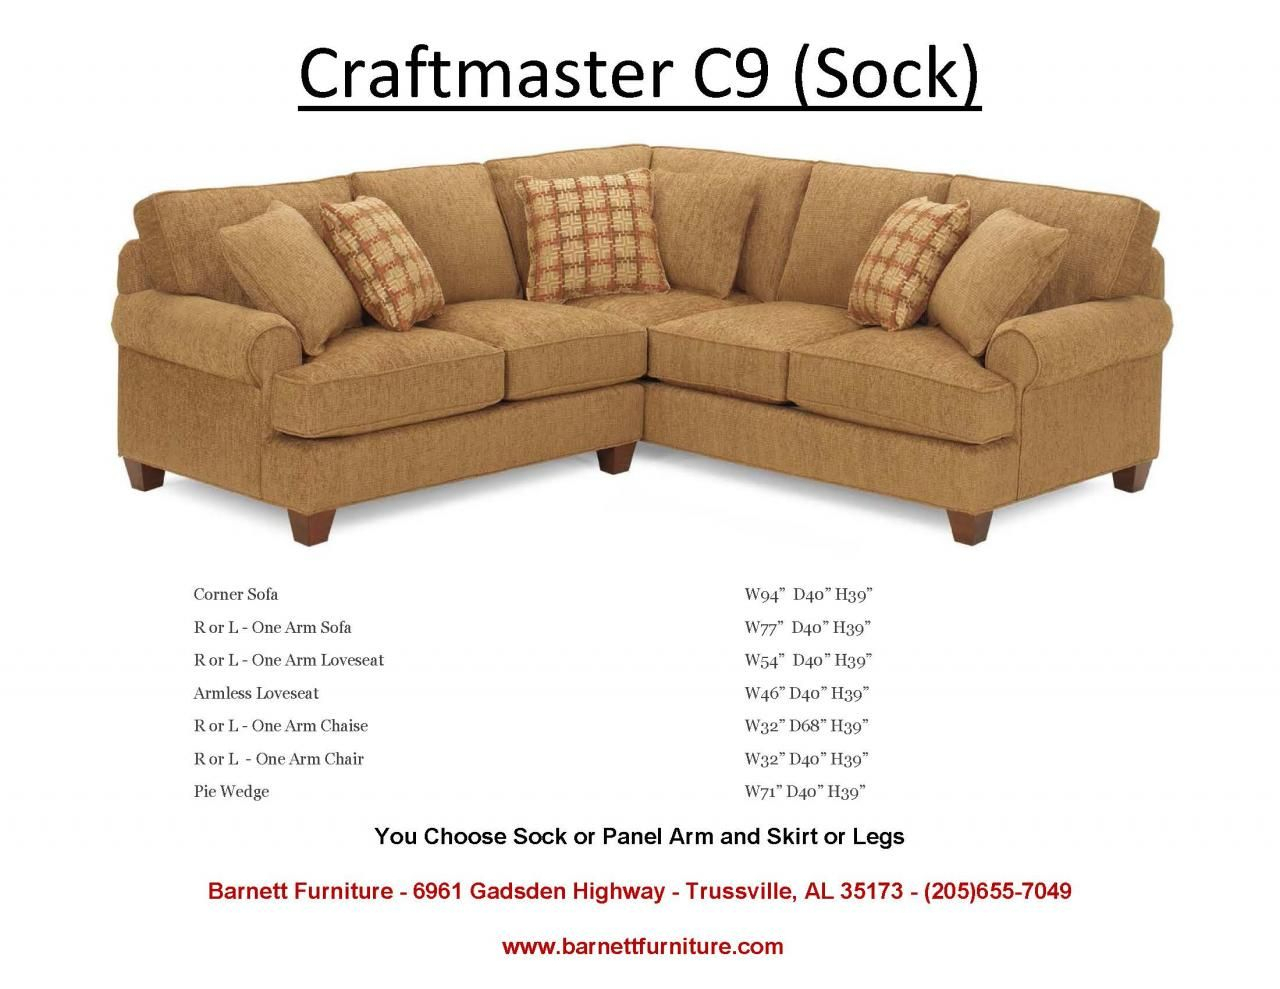 Craftmaster C9 Sectional With Sock Arm And Turned Leg (View 15 of 25)